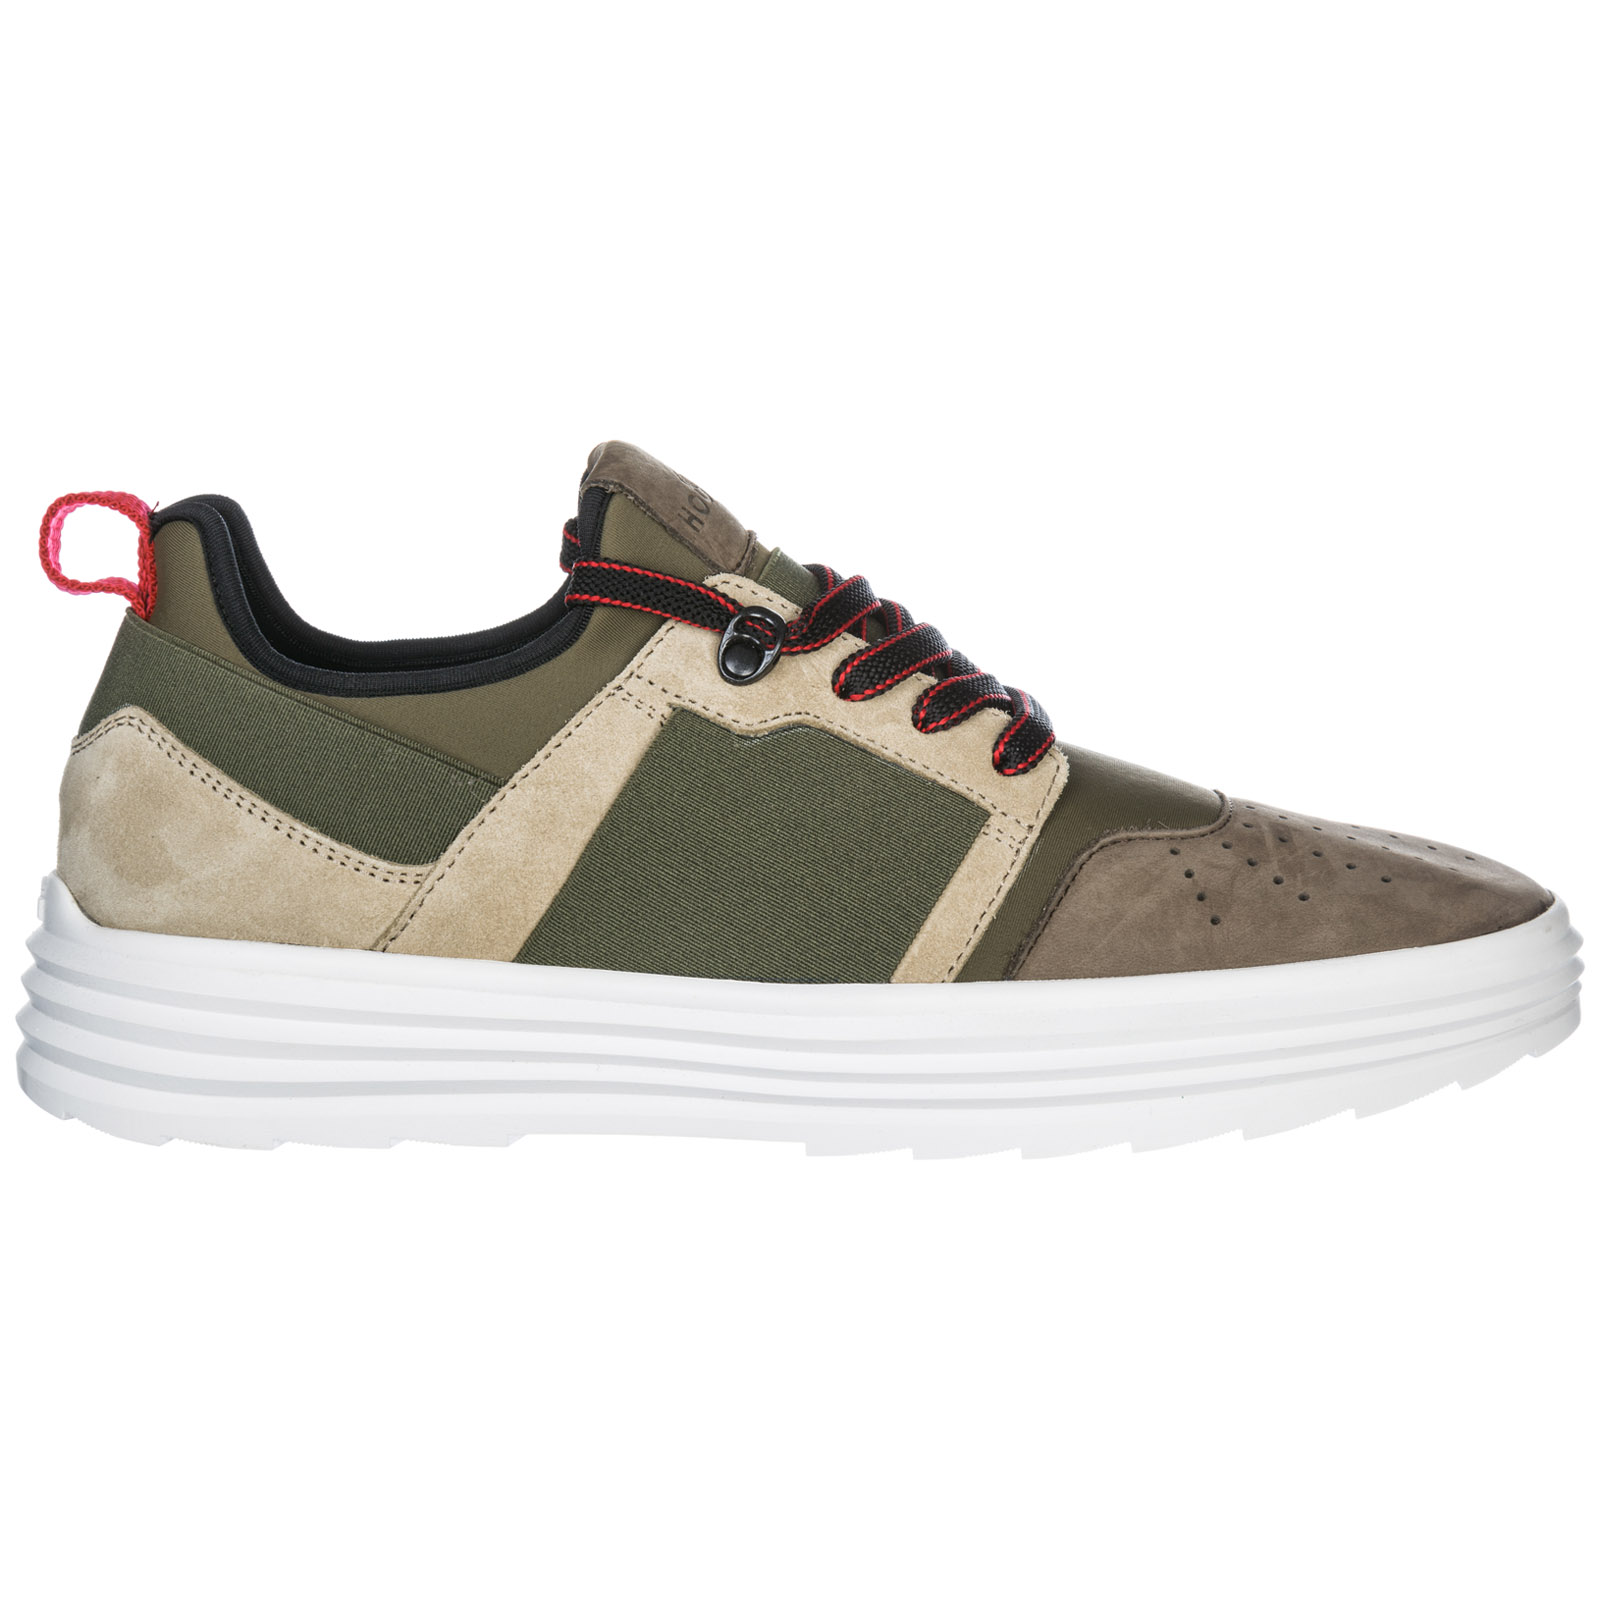 Hogan Men's Shoes Leather Trainers Sneakers Helix H341 In Green ...